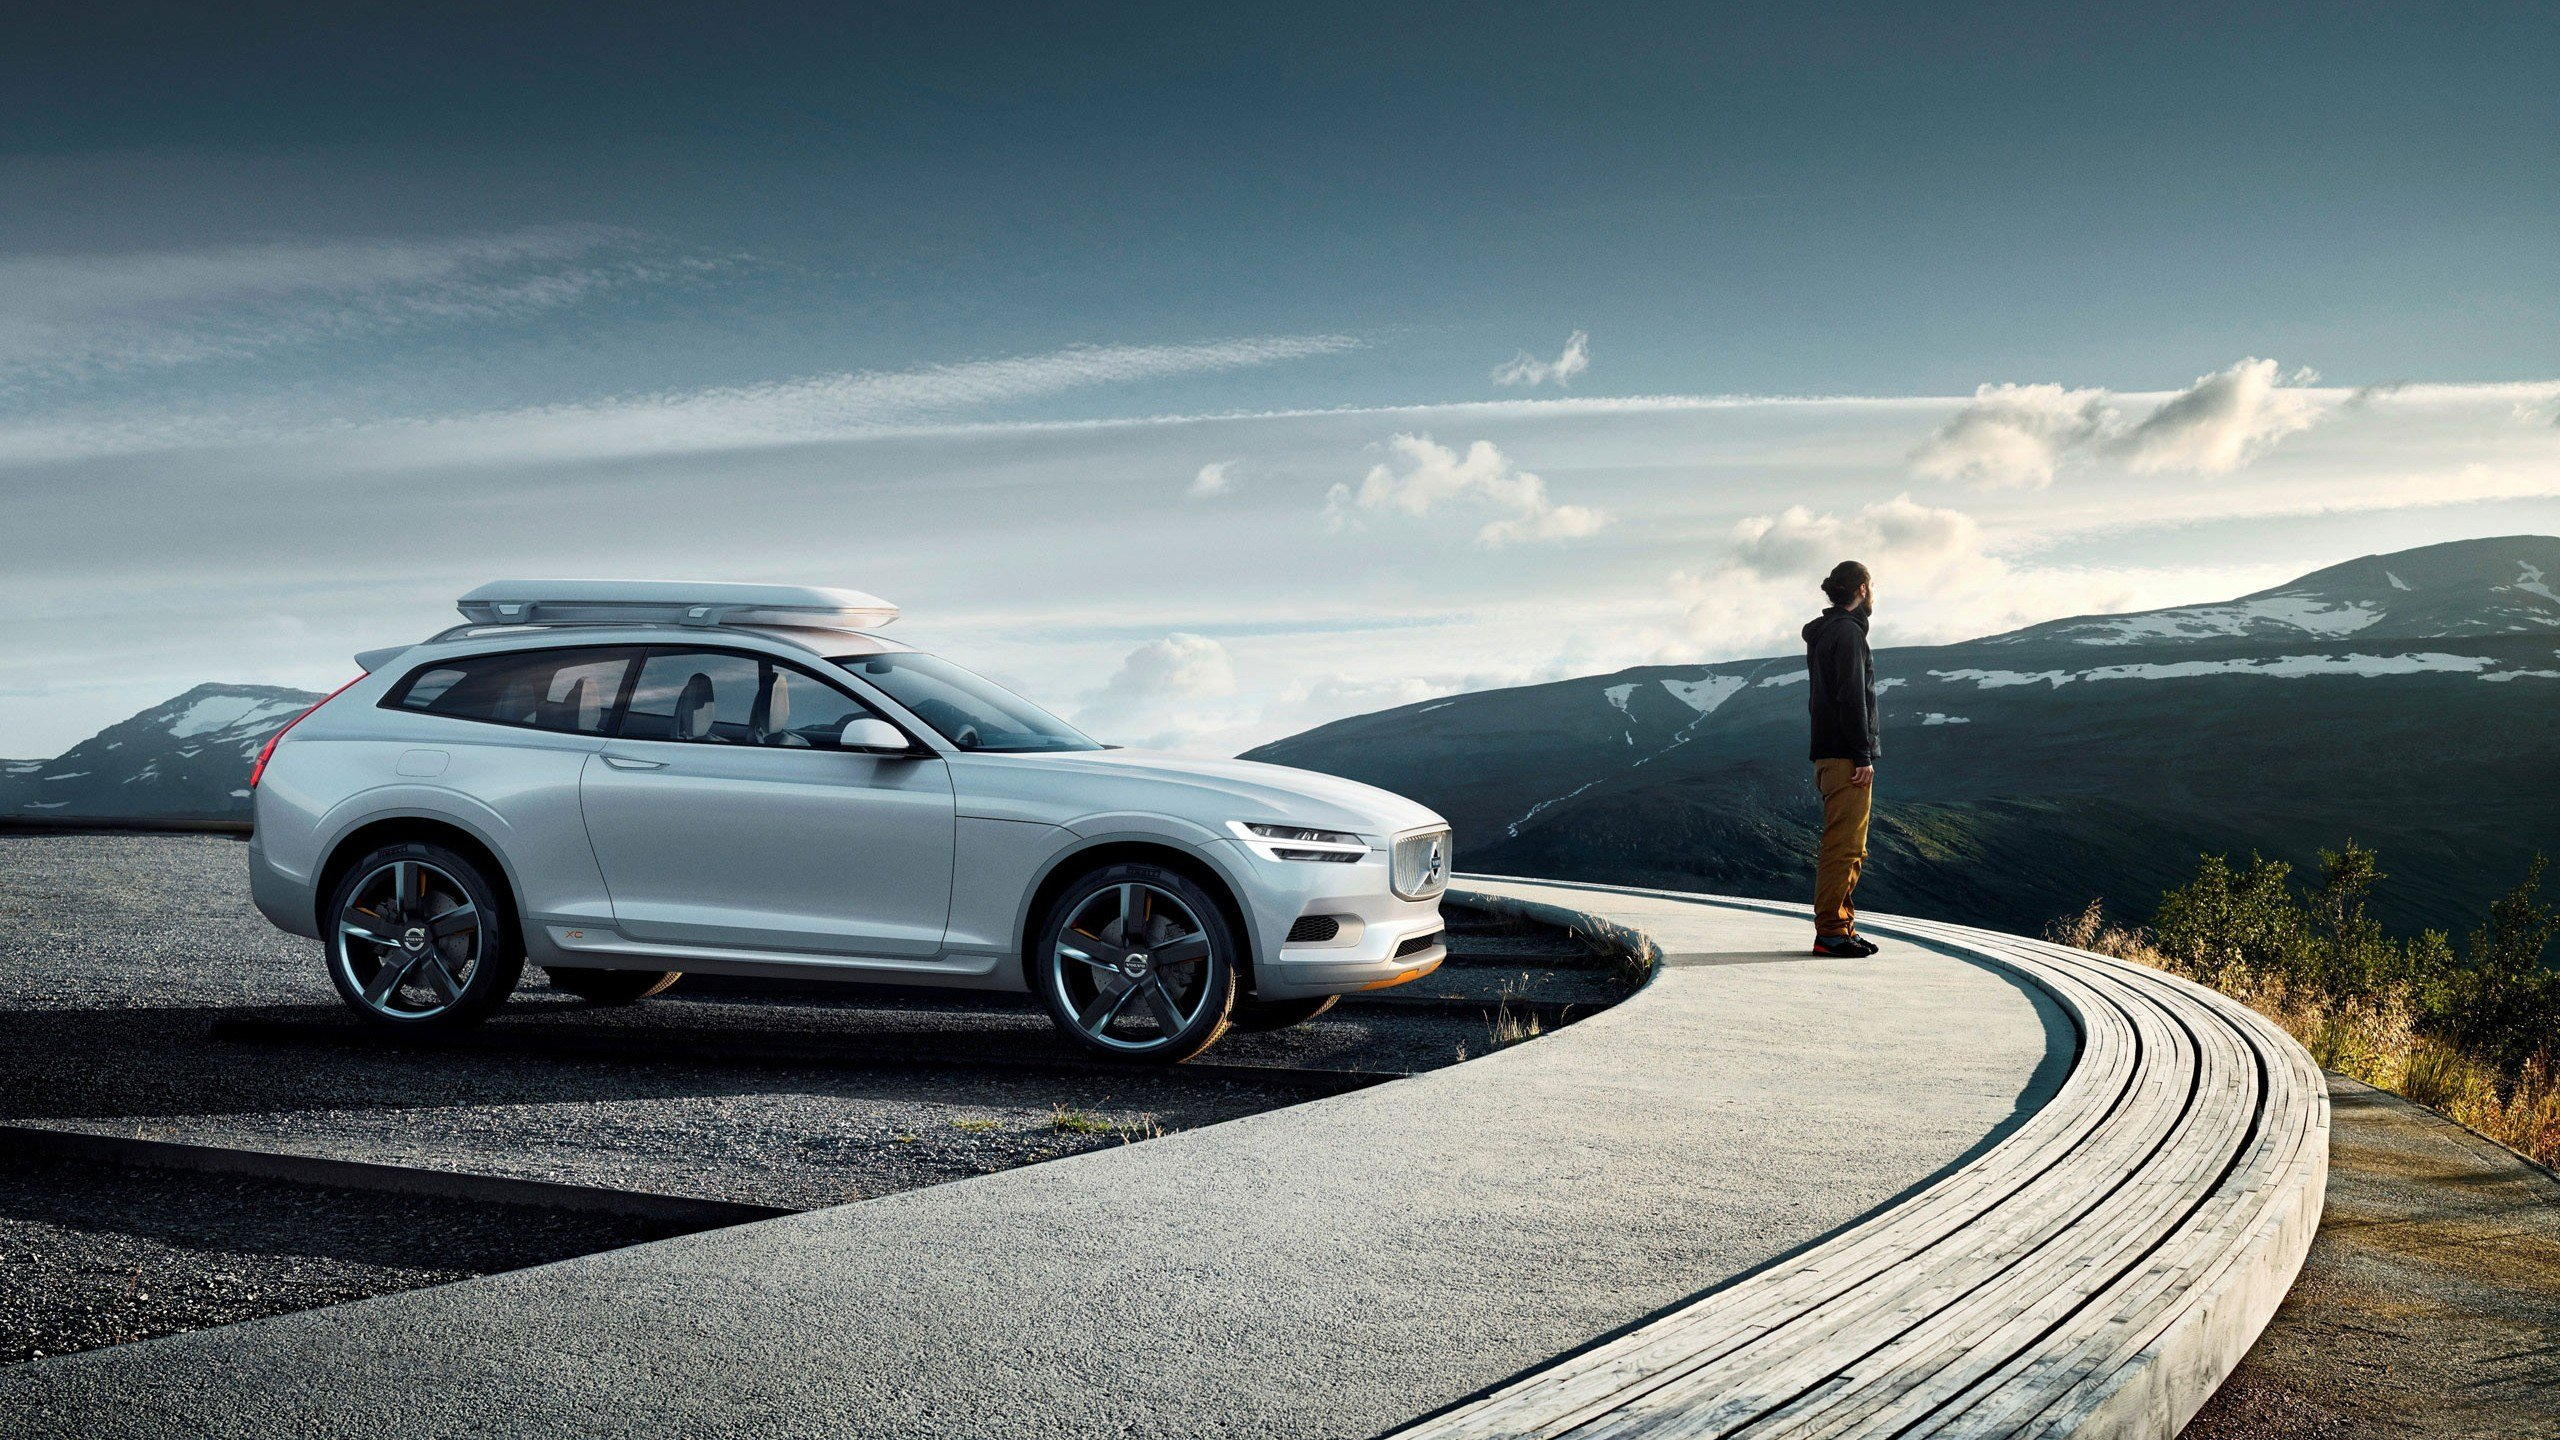 New Volvo Xc Coupe Concept 2014 Wallpaper Hd Car Wallpapers On This Month